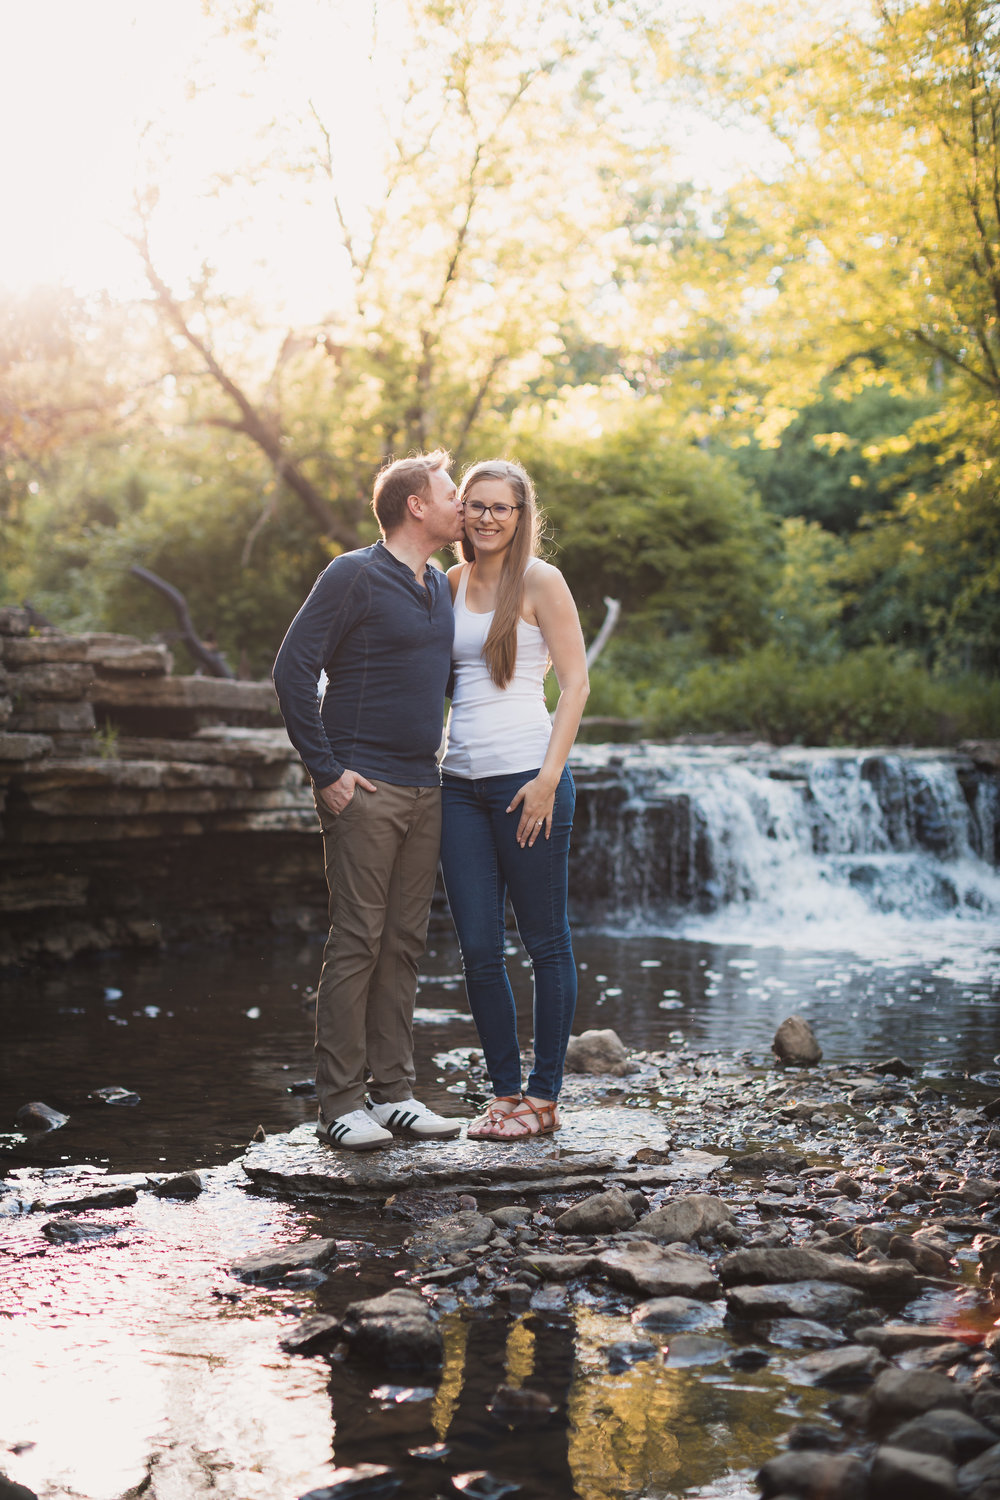 amanda+sean_engagement_20180603_06.jpg